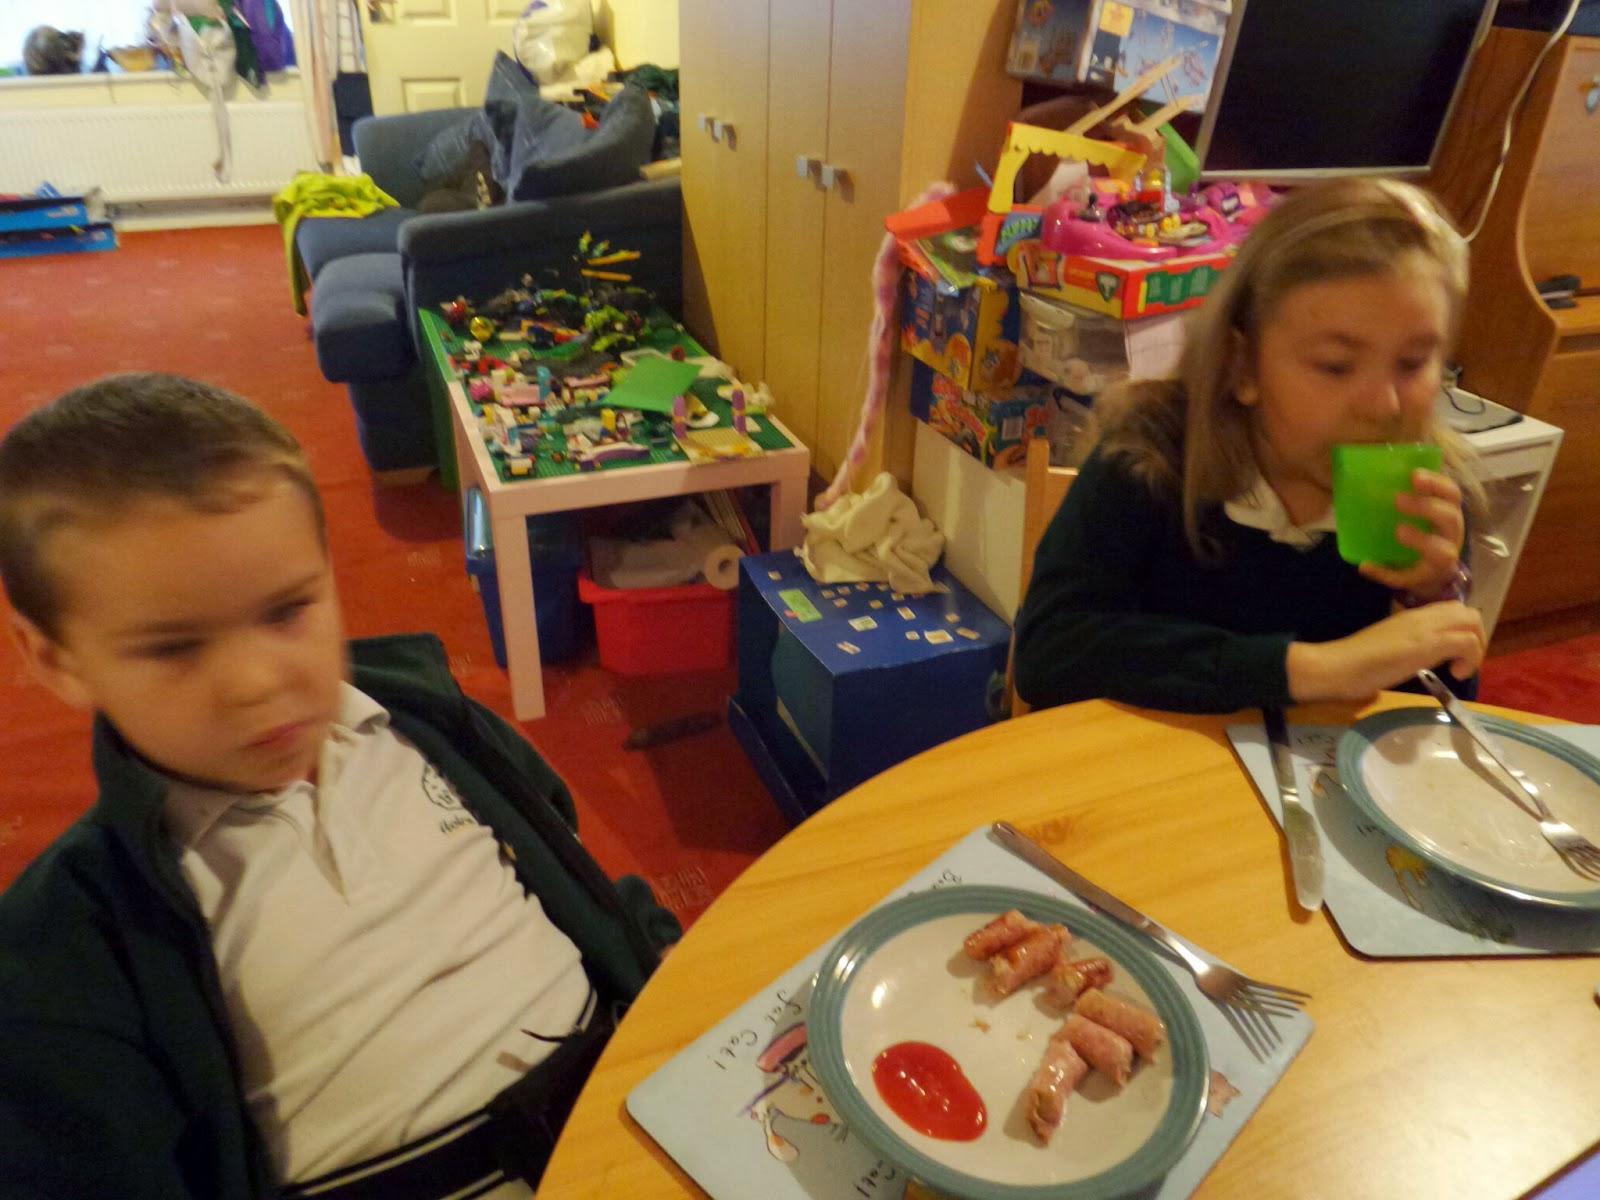 The children eating breakfast (sorry it's blurry!)